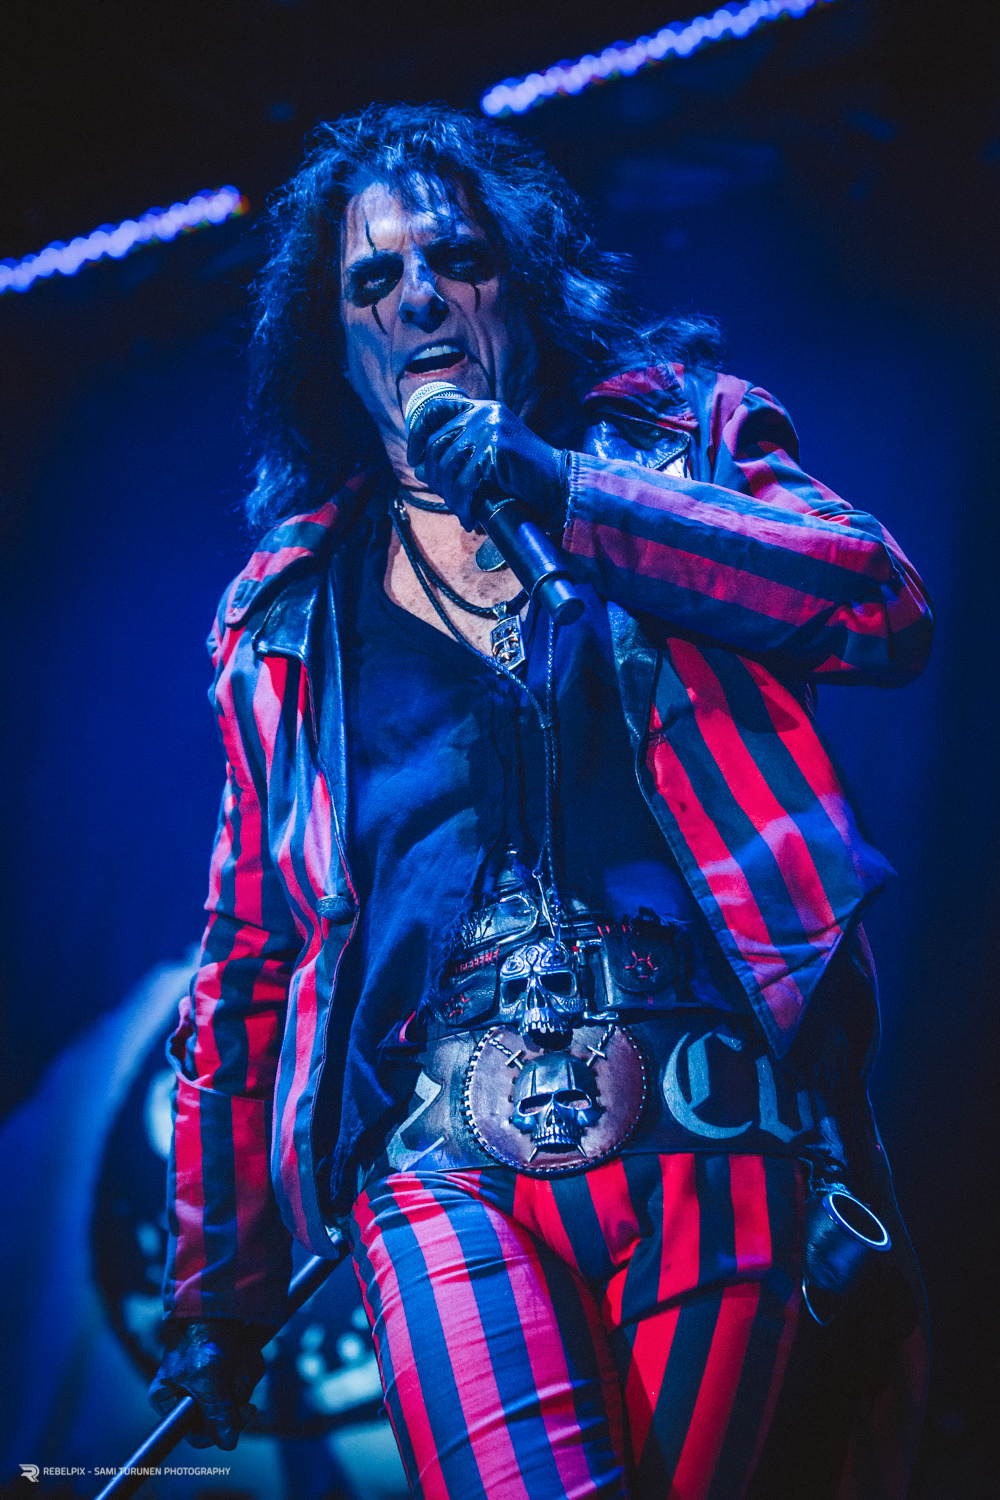 REBELPIX - Sami Turunen Photography / Alice Cooper